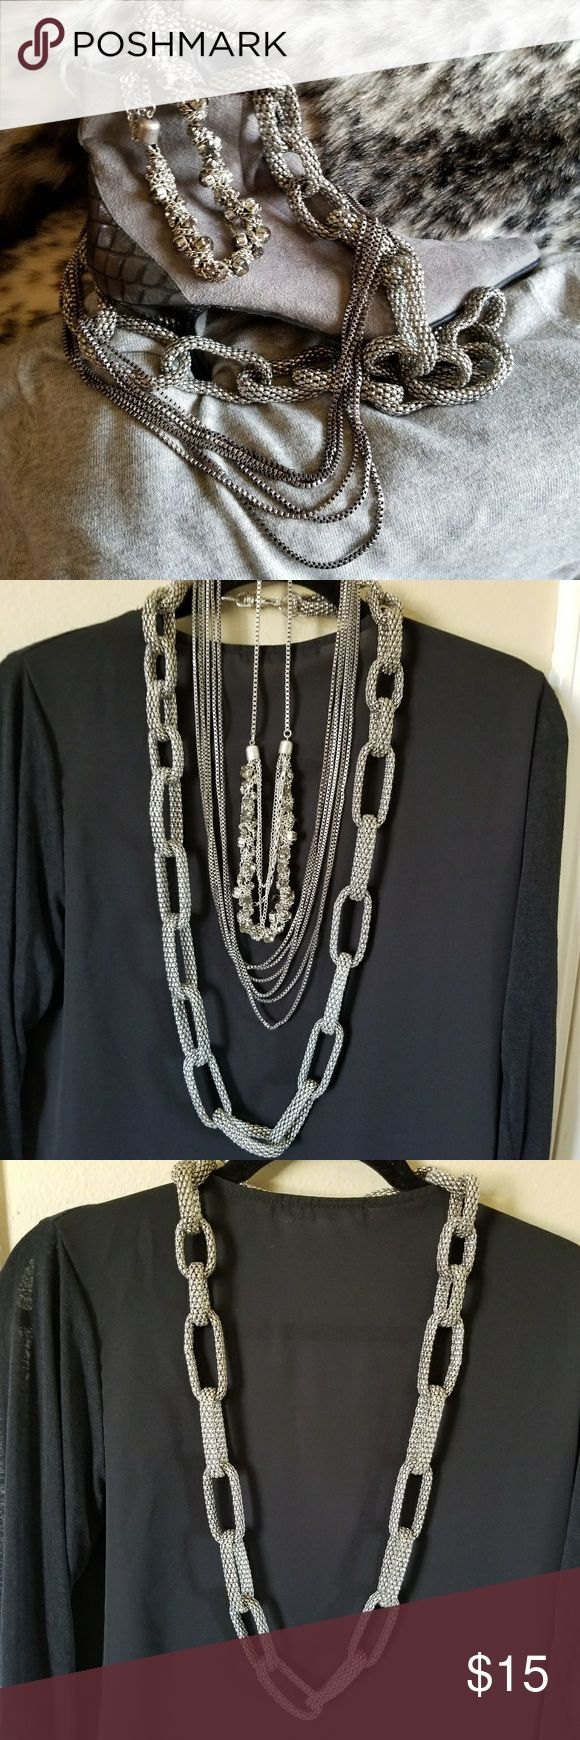 Three Night on the Town Necklaces Three Night on the Town Necklaces - silver tone 18 inches, 14 inches and 12 inches. Pre-owned in good condition. They're fun and funky Jewelry Necklaces